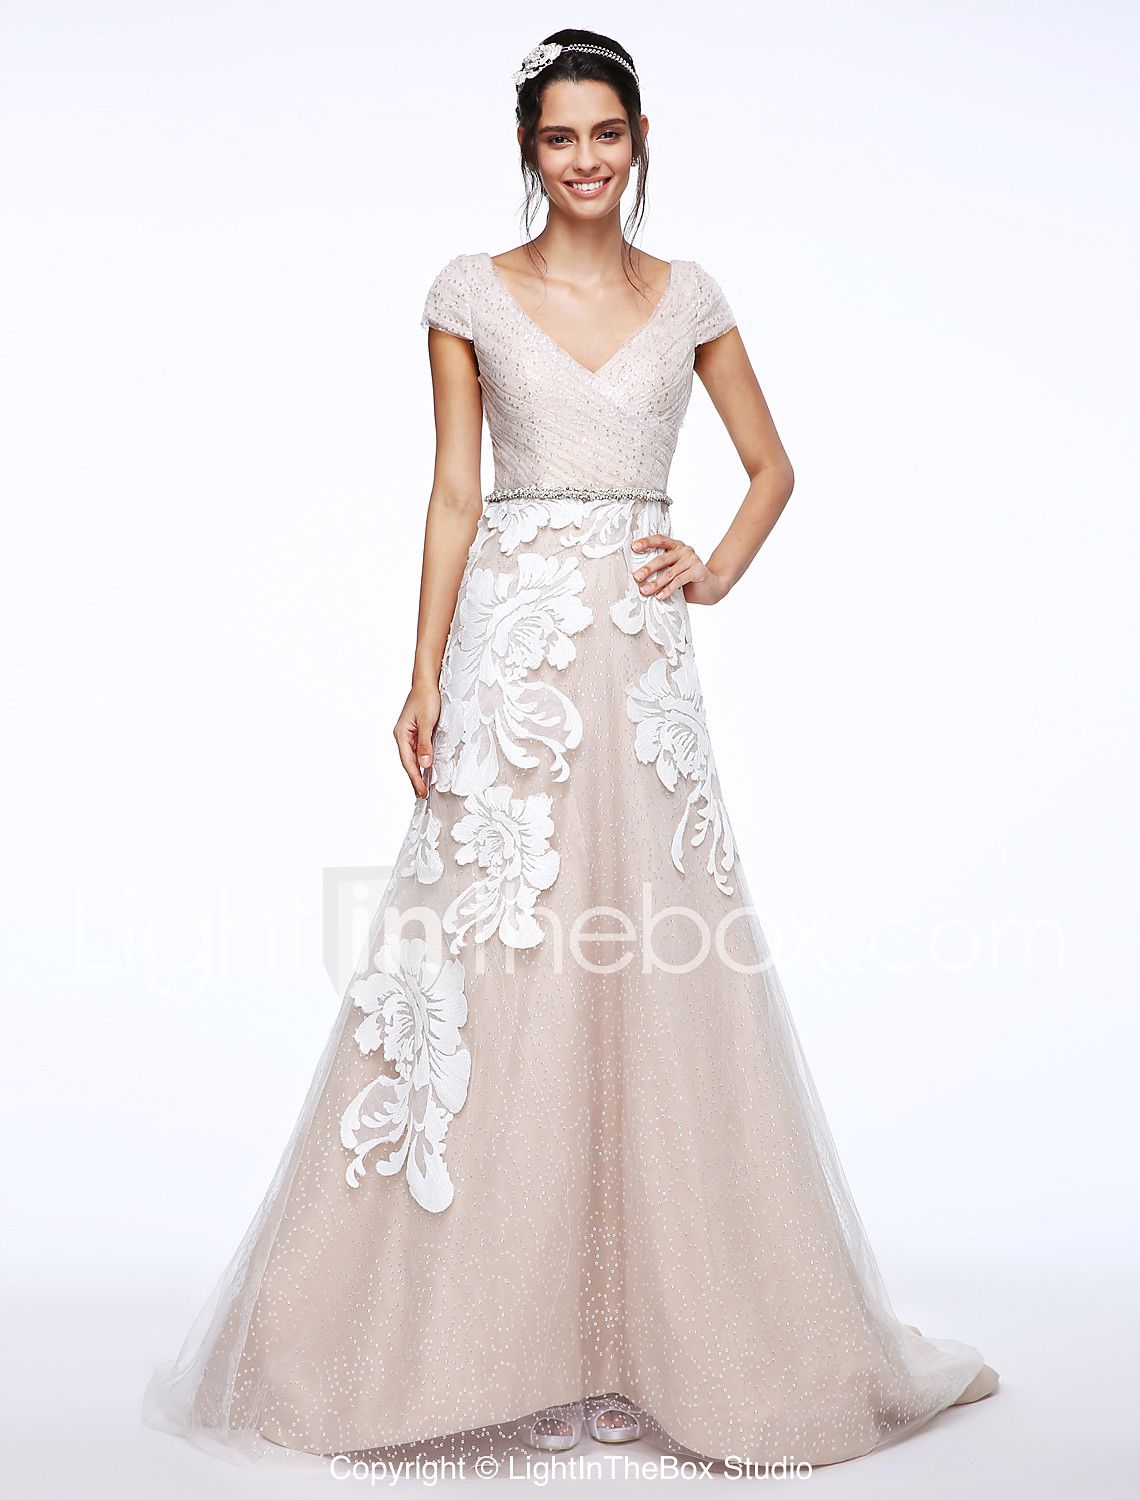 Lightinthebox wedding dresses  ALine Vneck Sweep  Brush Train Lace Tulle Wedding Dress with